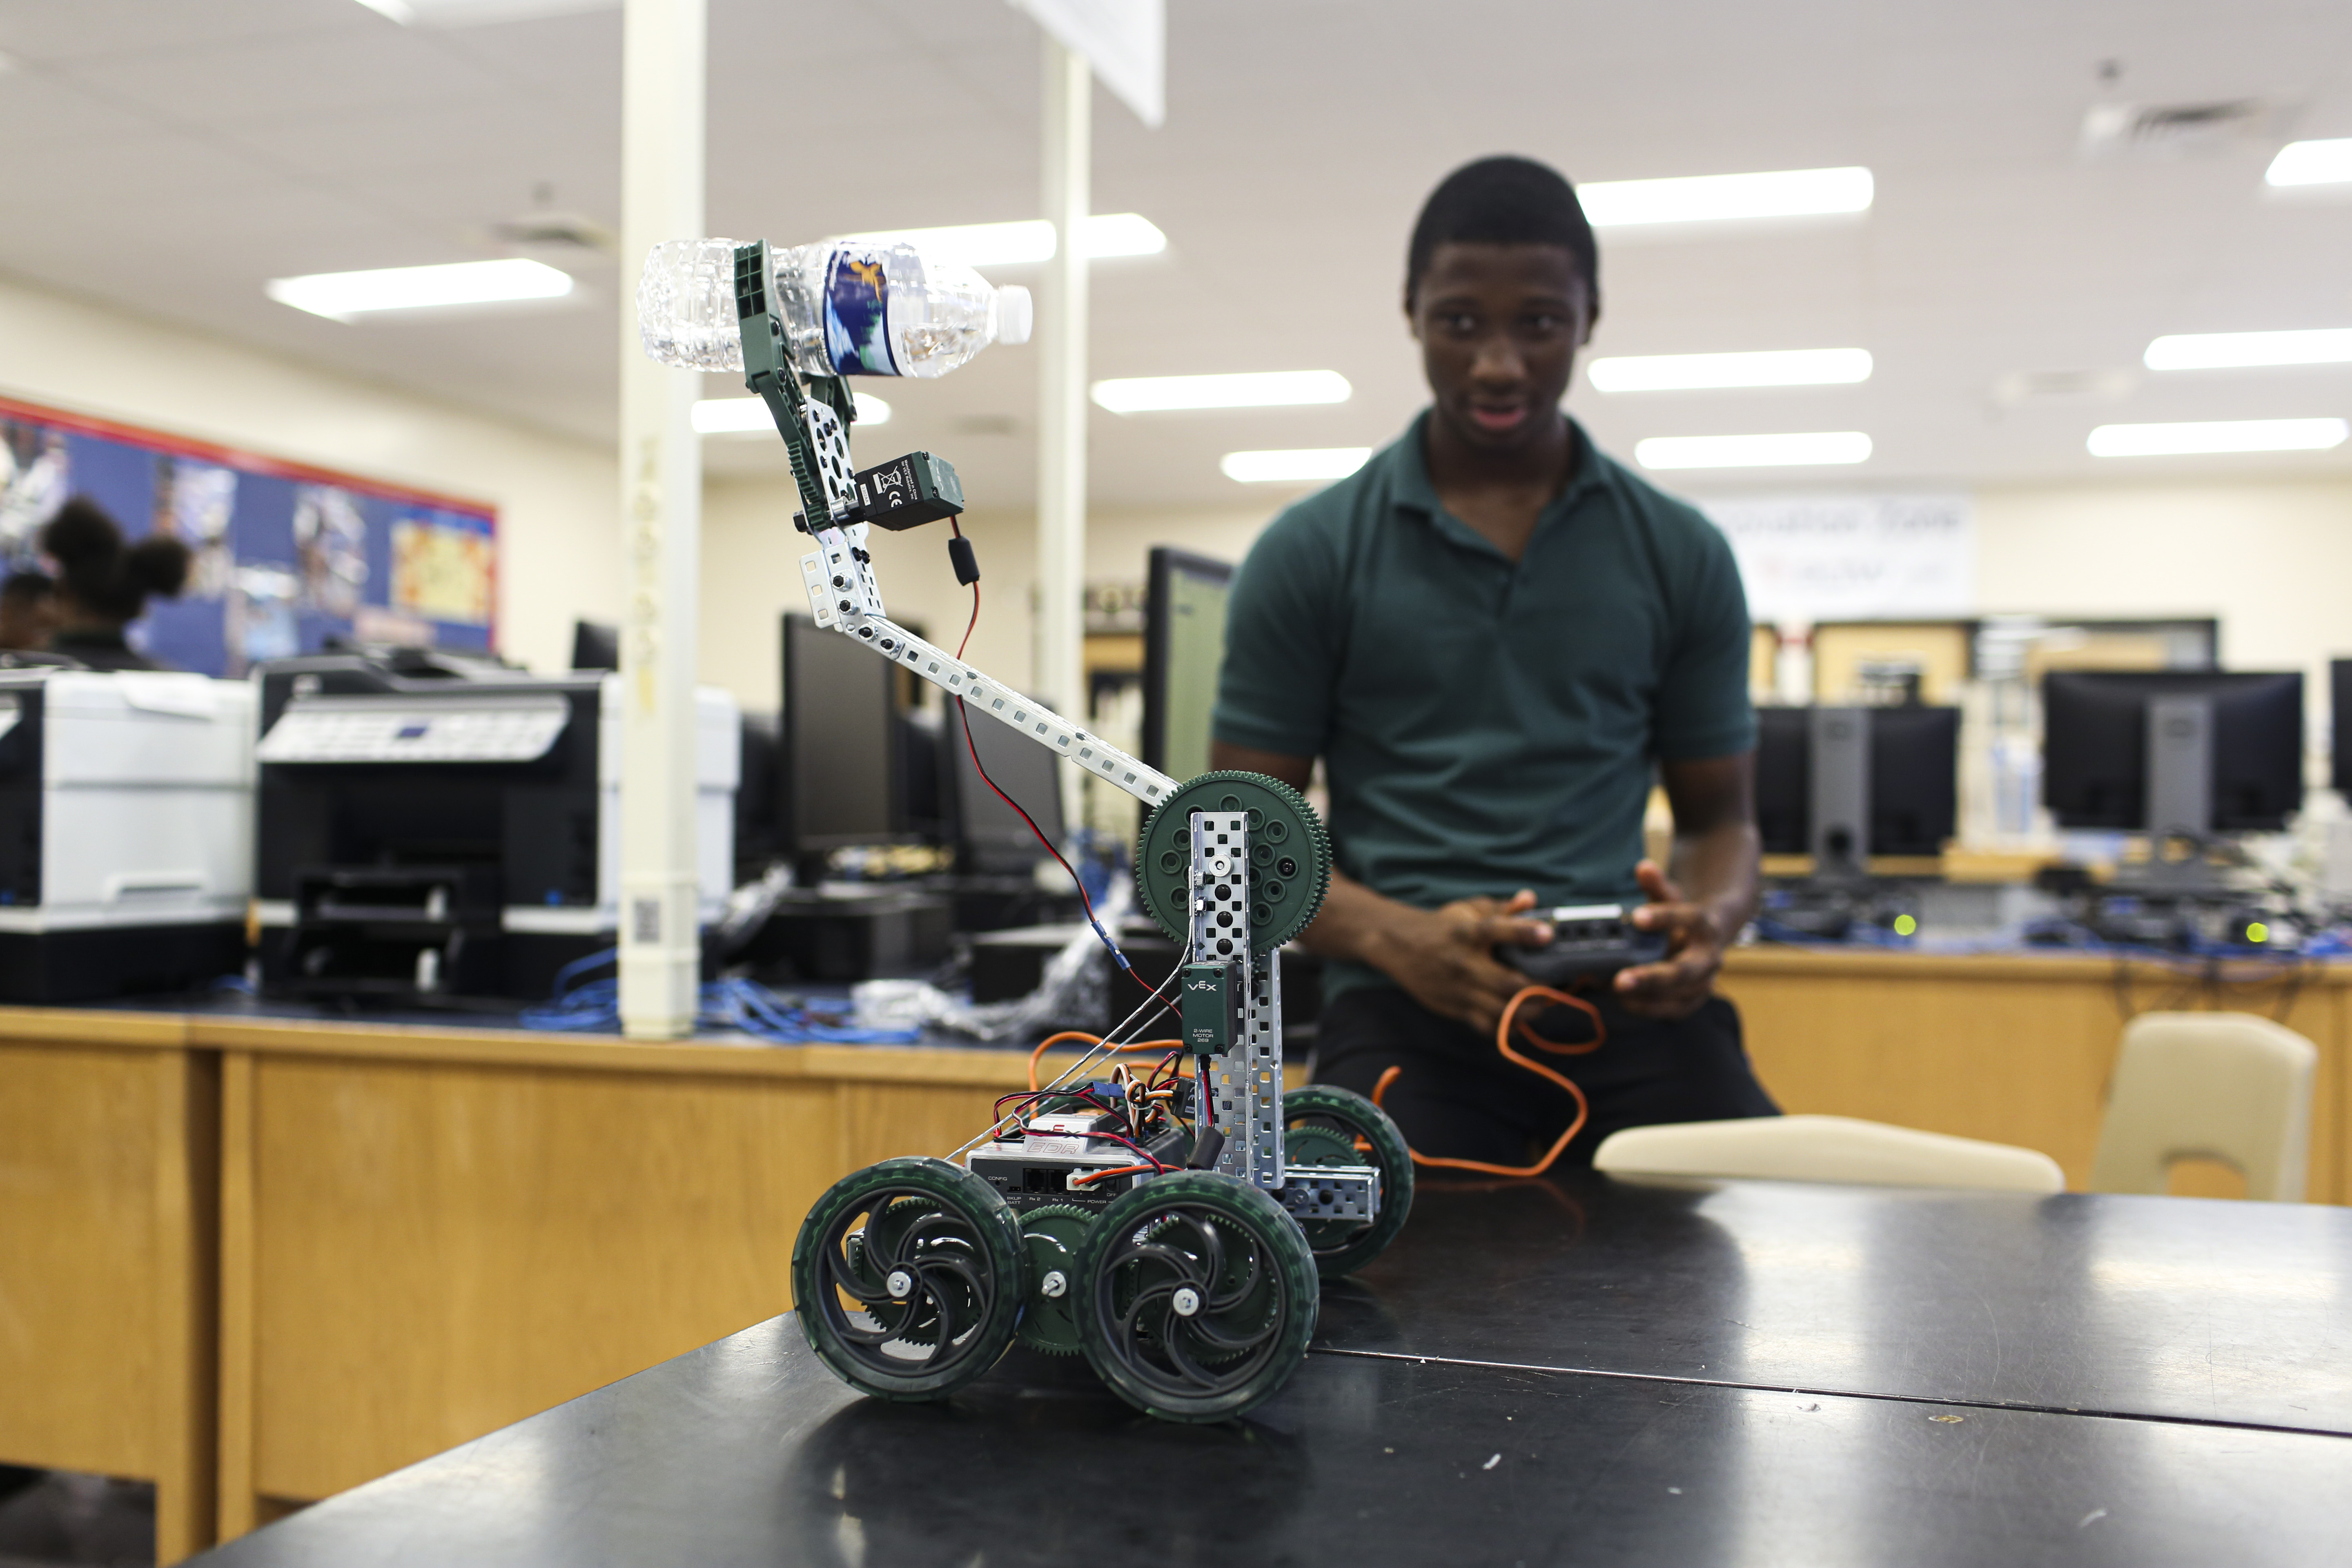 Student shows off his robot.